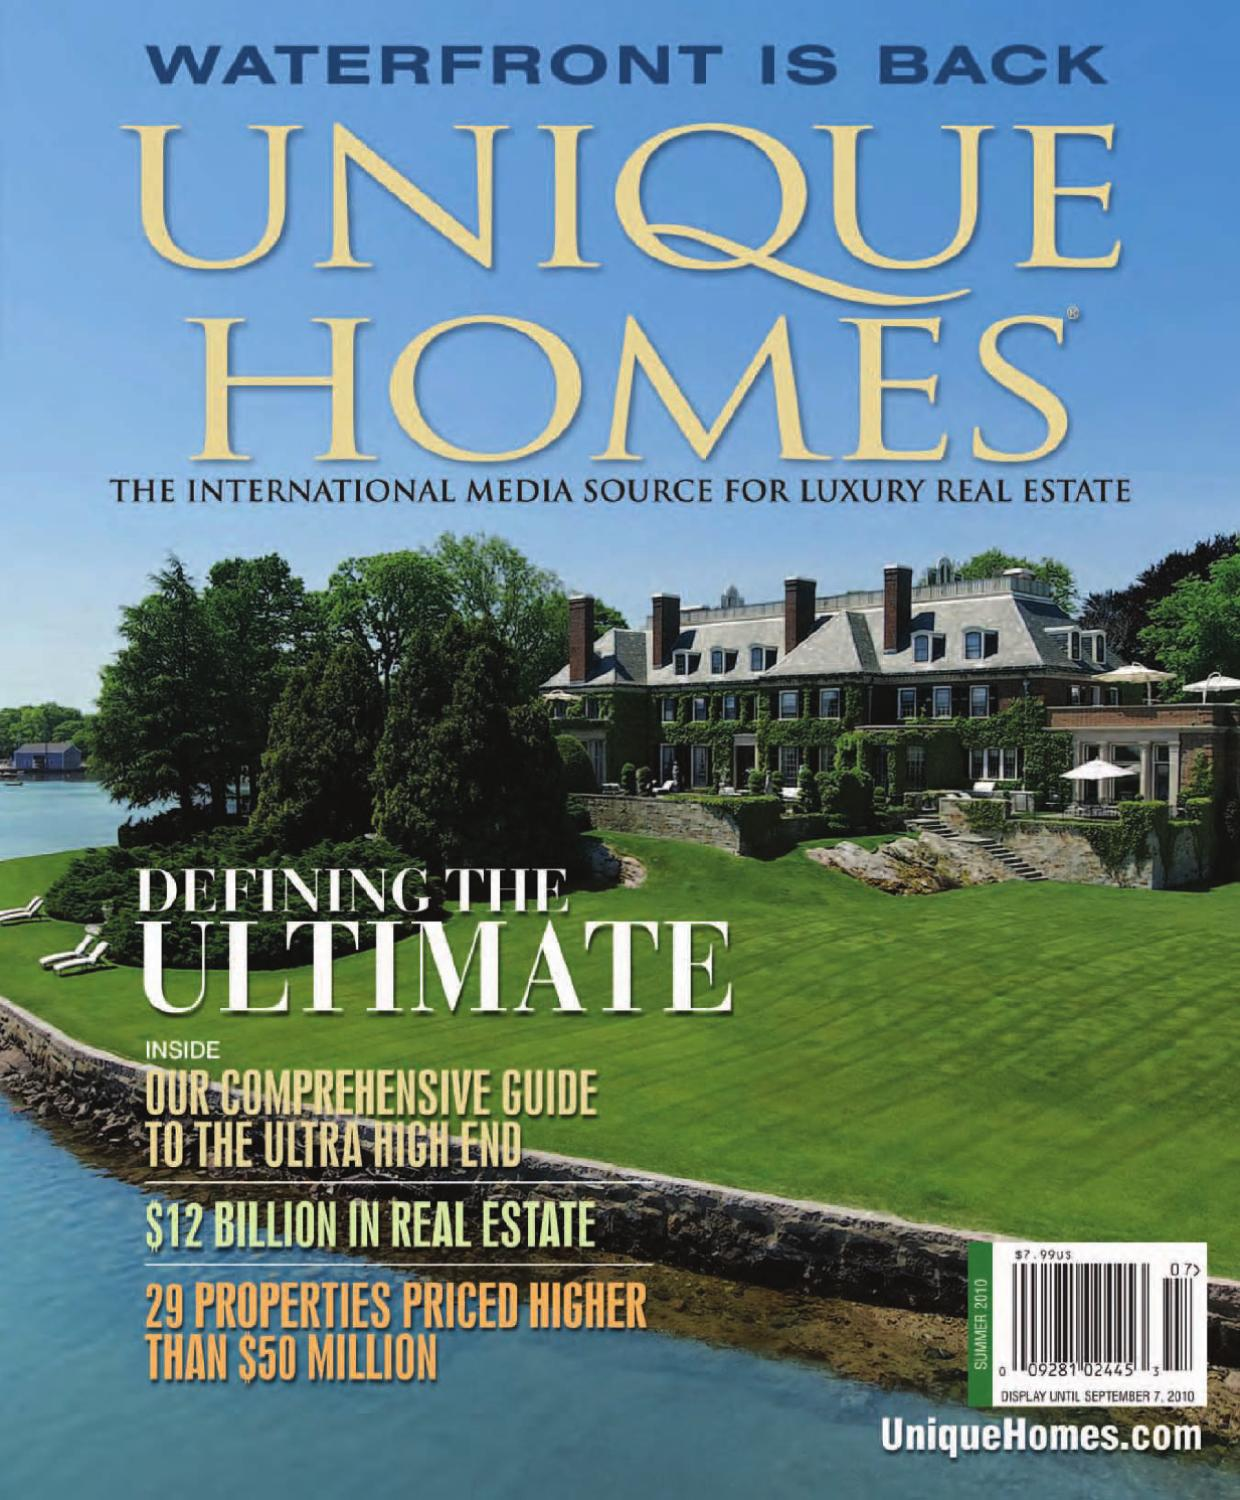 Unique Homes by Network Communications Inc  - issuu